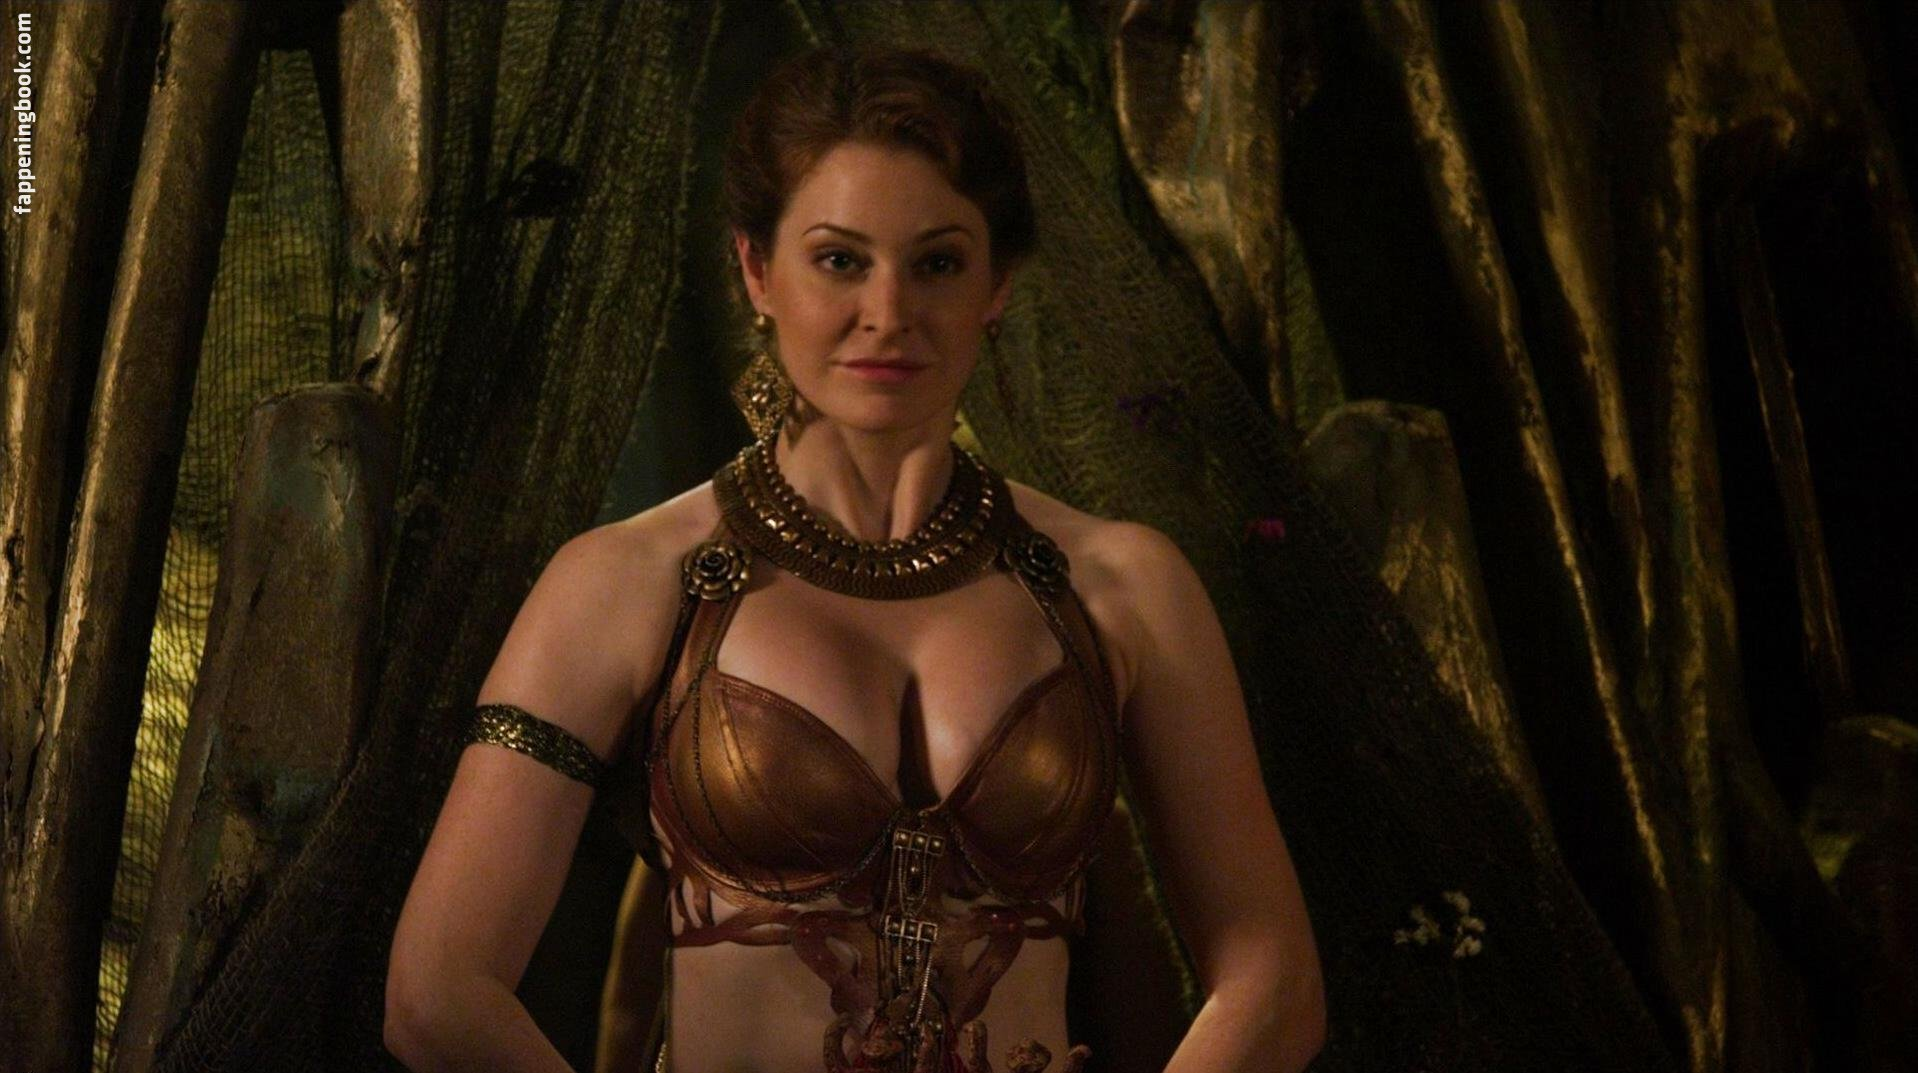 Esmé Bianco Nude, Sexy, The Fappening, Uncensored - Photo